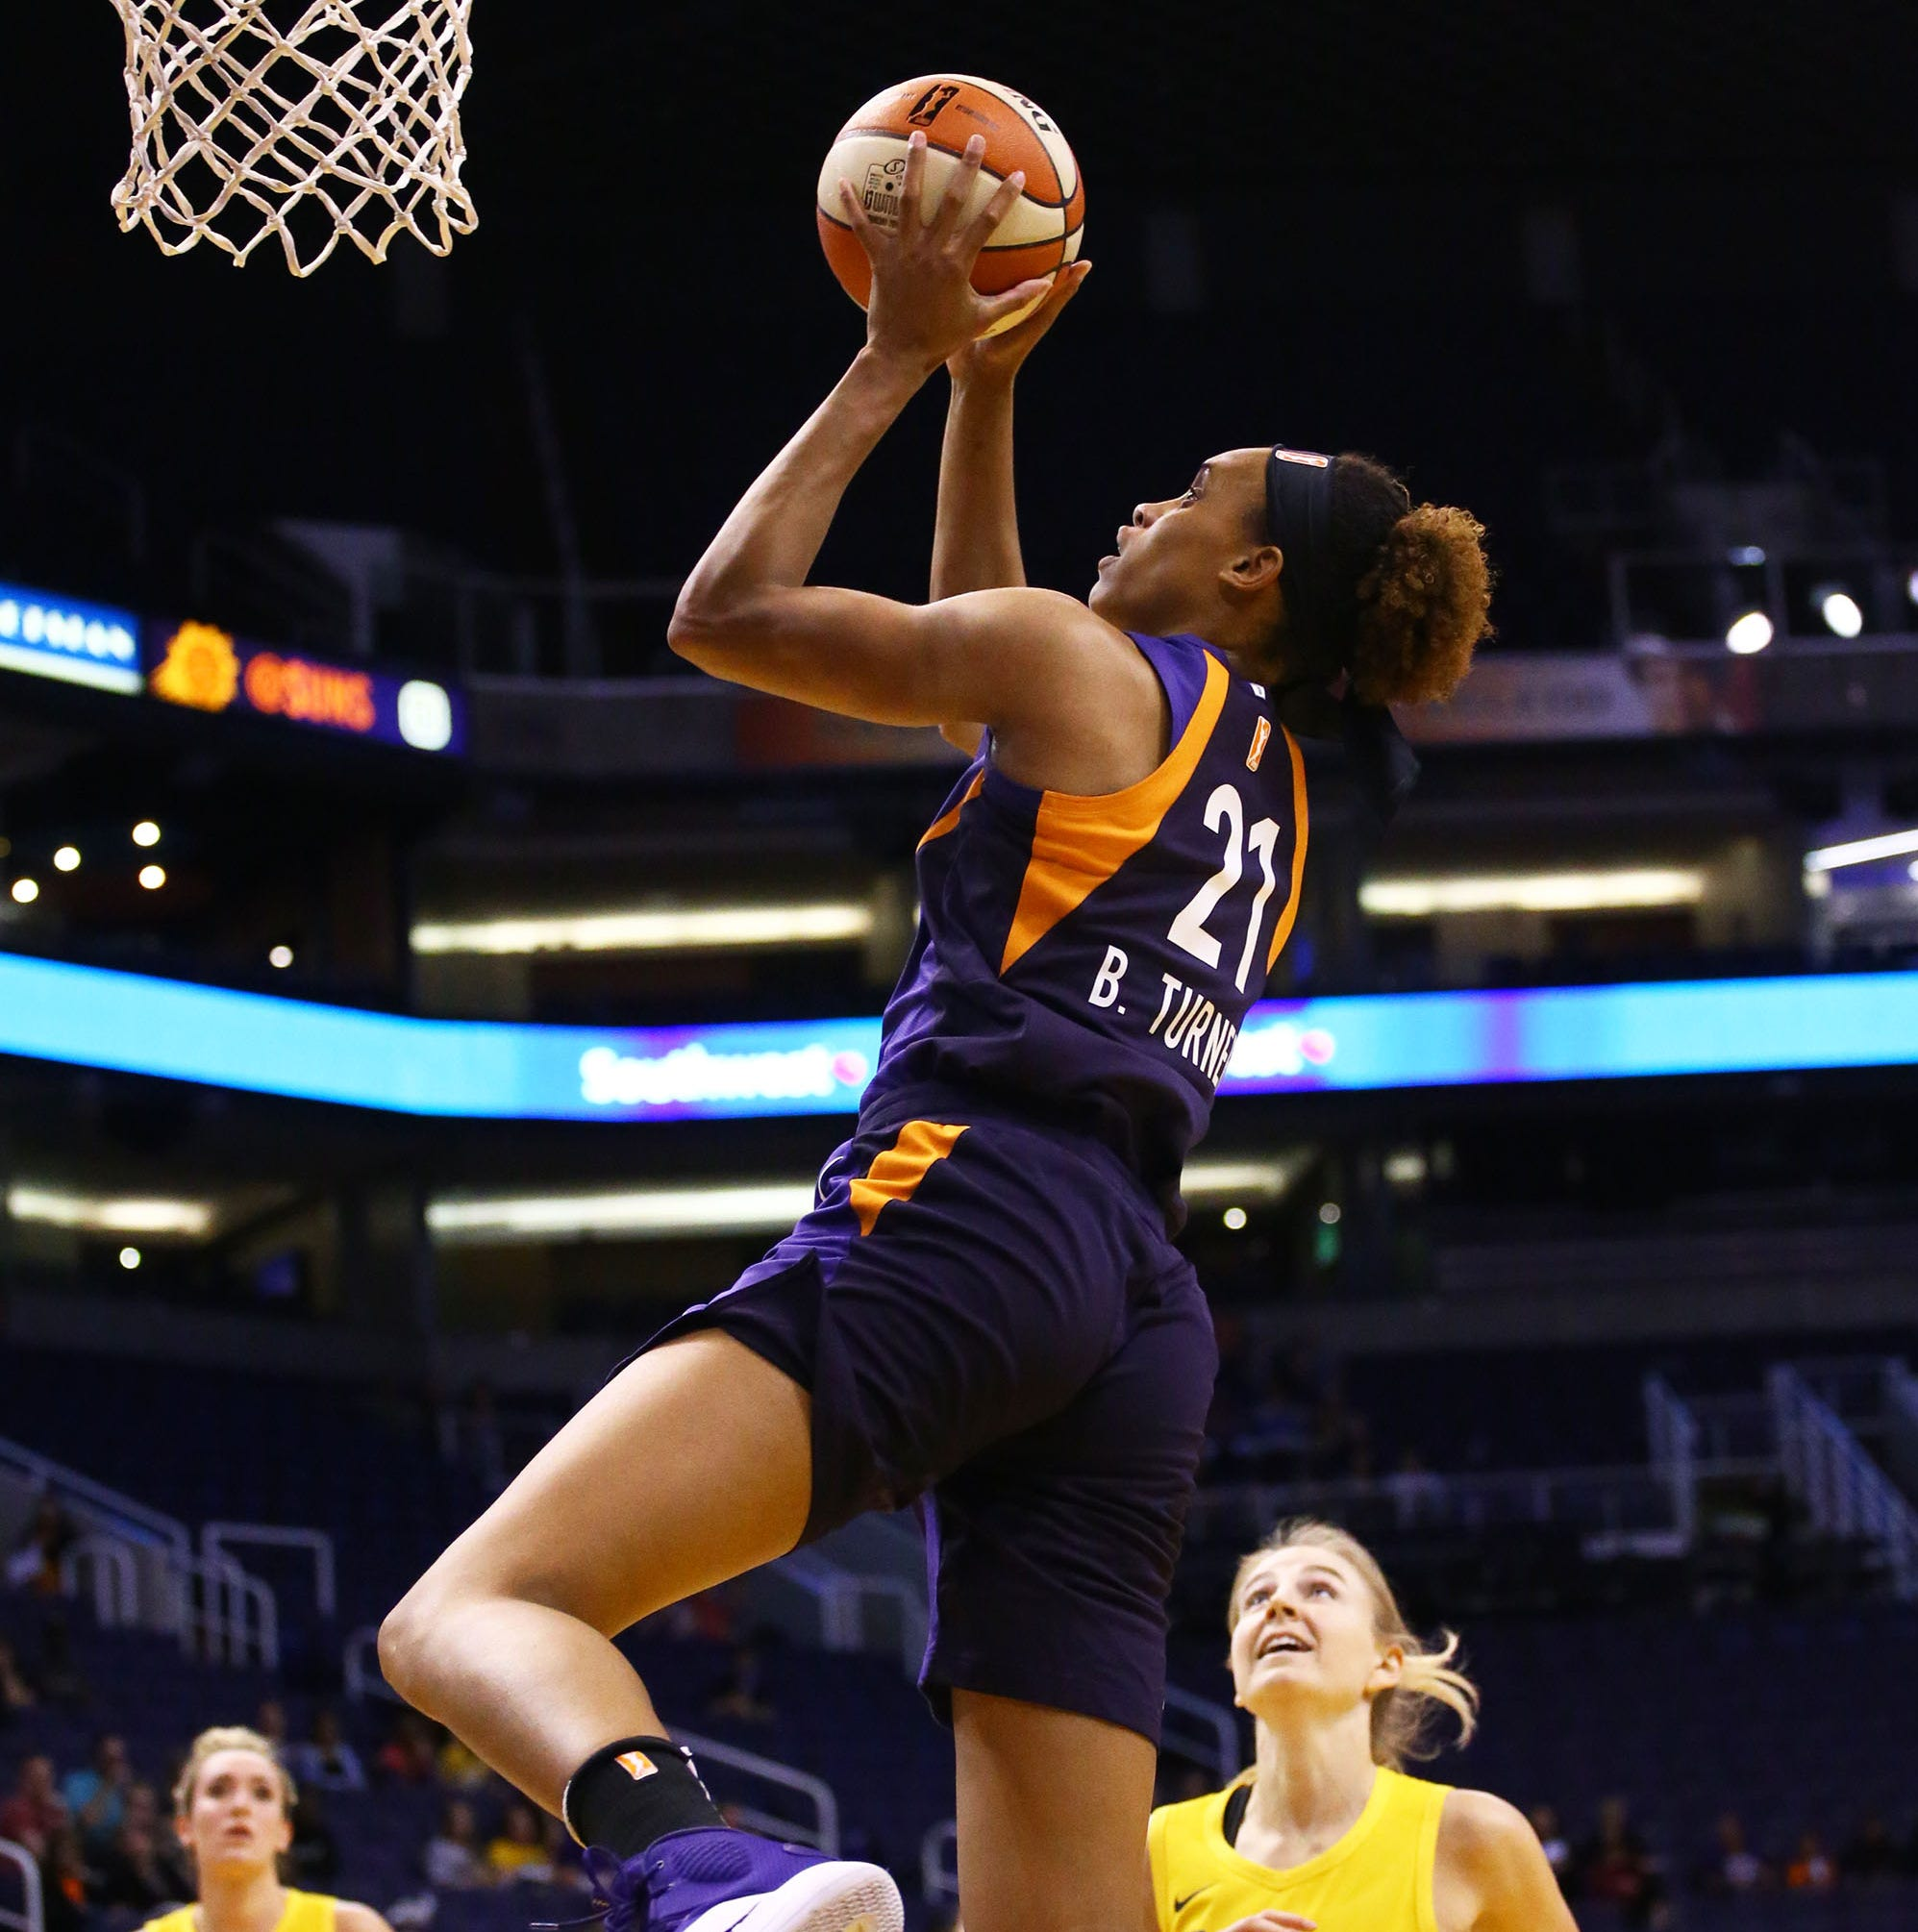 Phoenix Mercury rookies come up big in fourth quarter of preseason debut